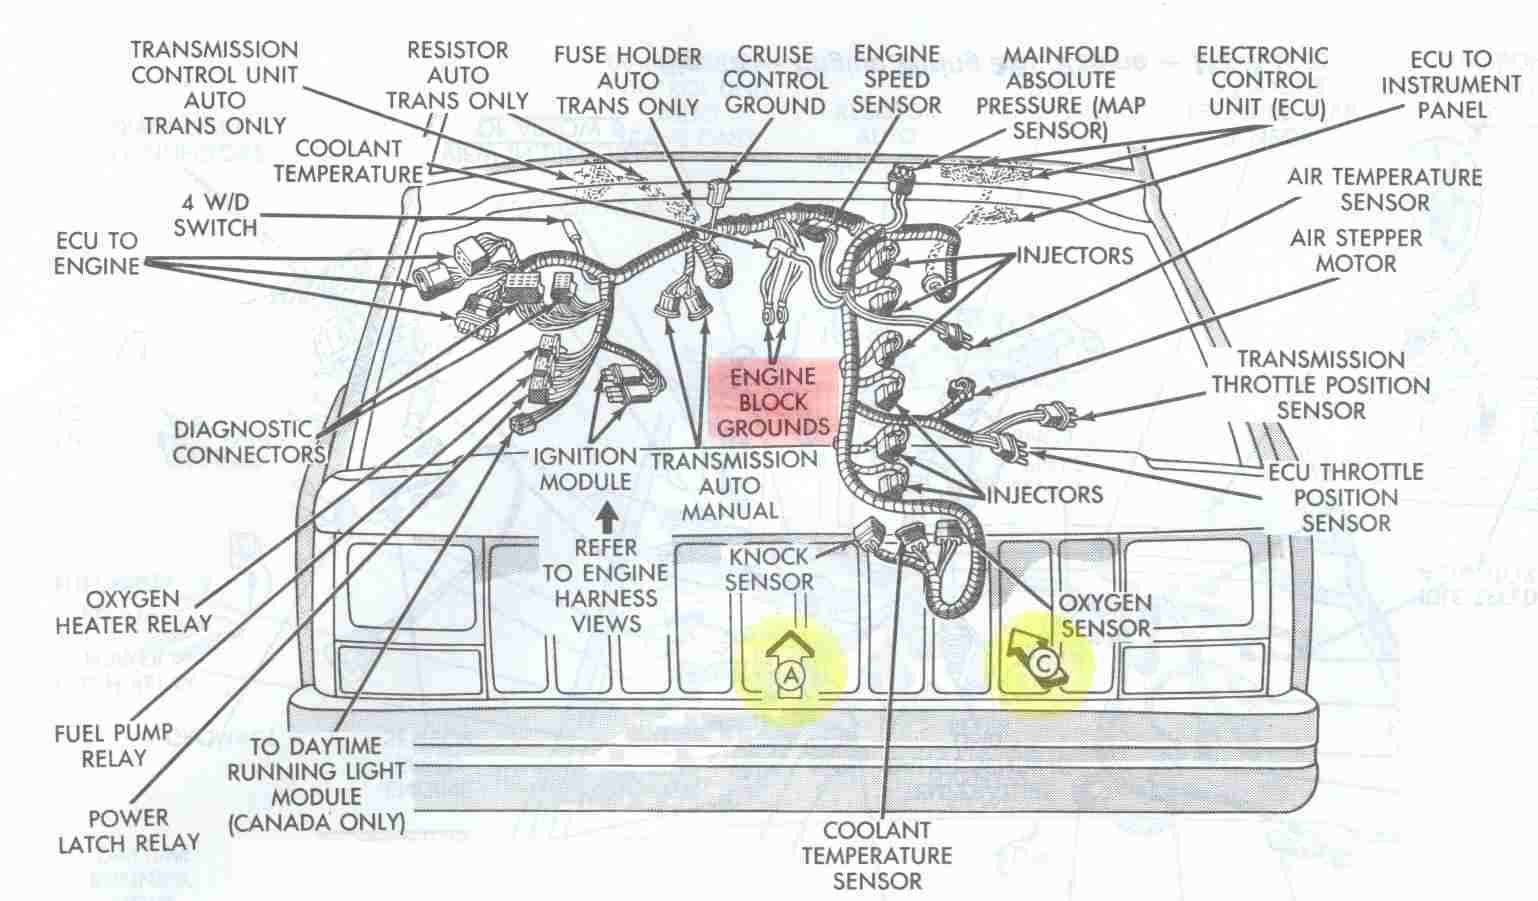 1996 Mitsubishi Montero Fuse Box Diagram Simple Guide About Wiring Images Gallery Engine Bay Schematic Showing Major Electrical Ground